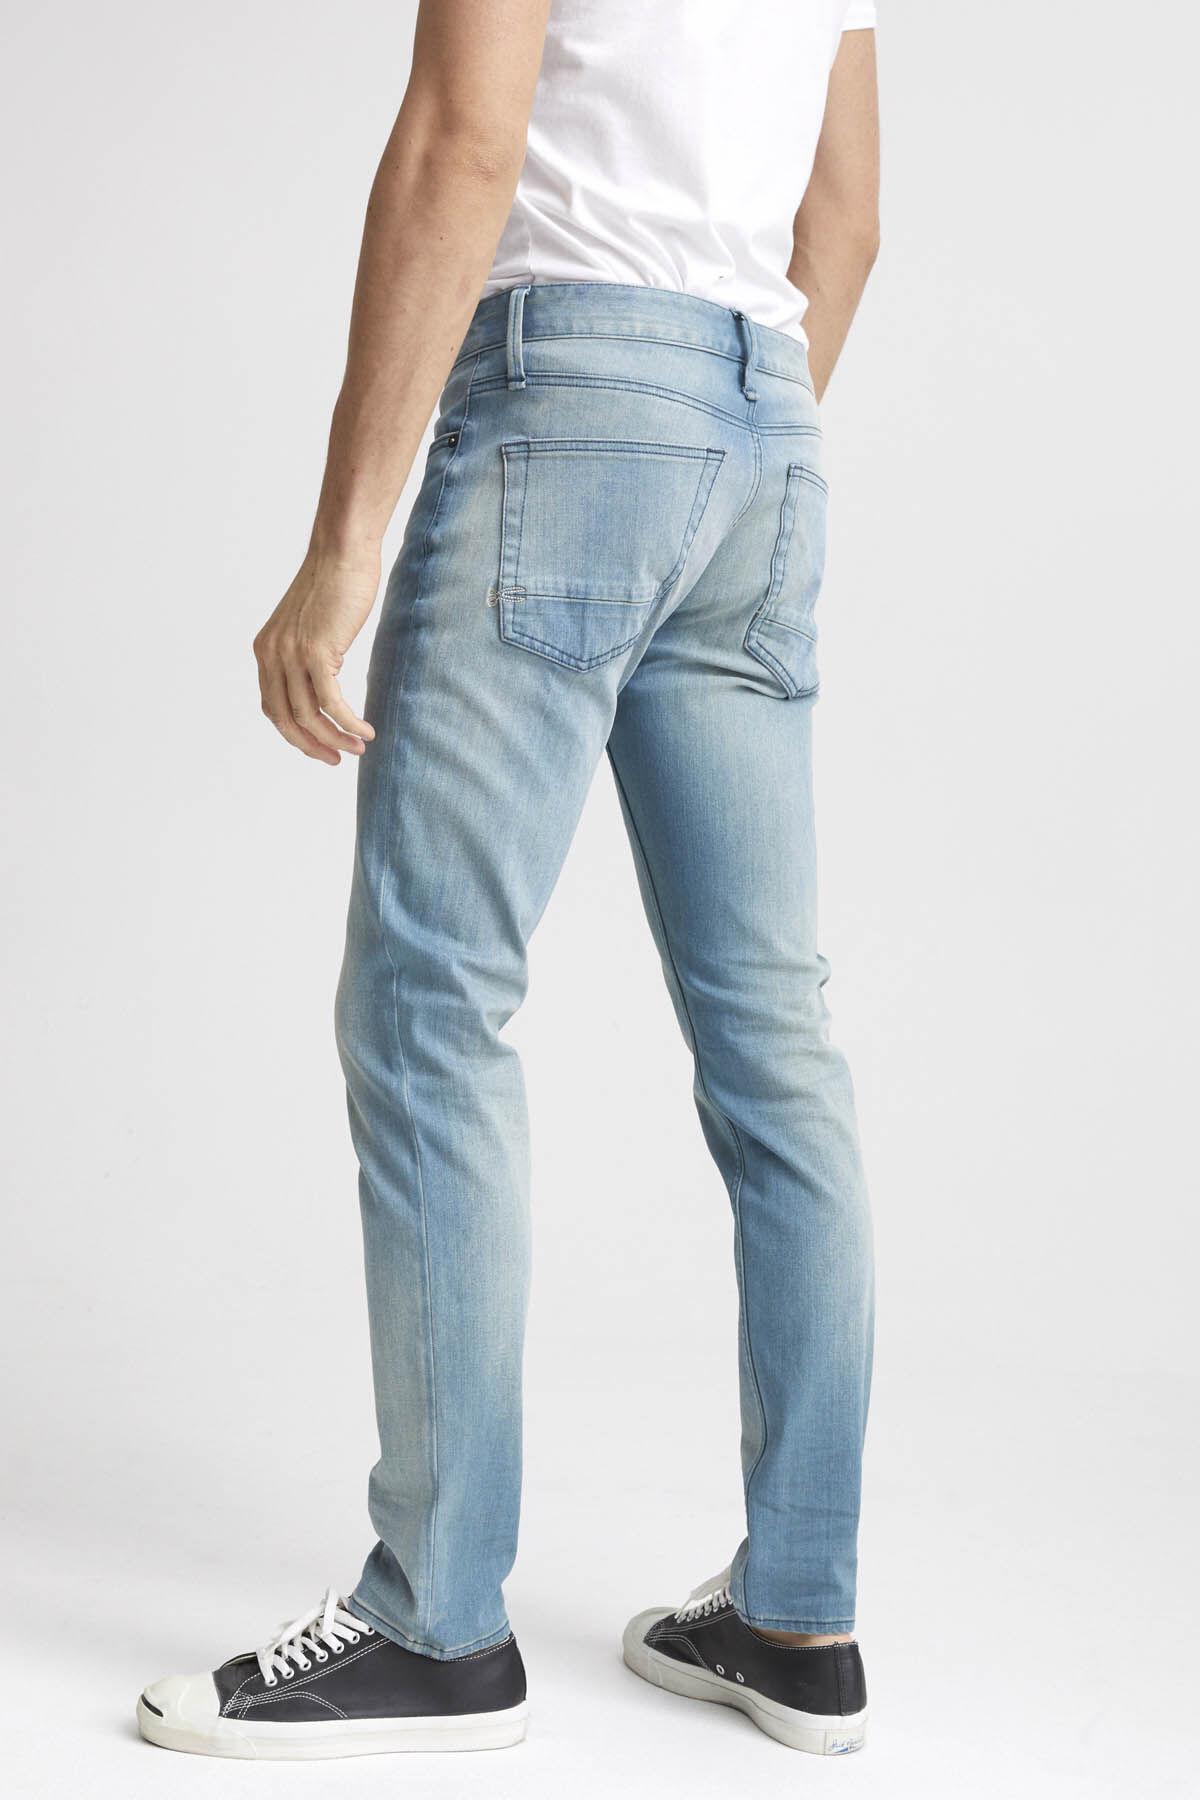 RAZOR Subtle Fade Denim - Slim Fit